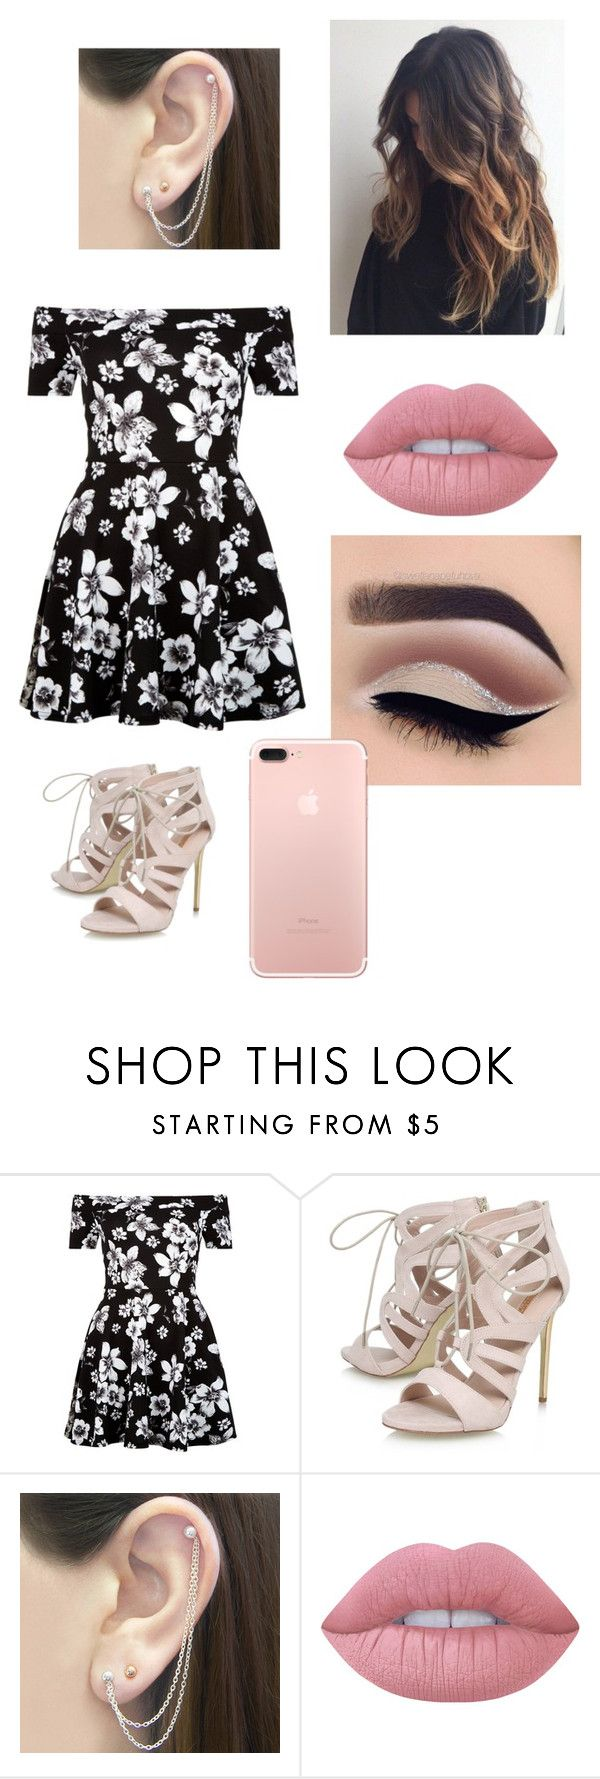 """Untitled #243"" by sports-00 ❤ liked on Polyvore featuring New Look, Carvela, Otis Jaxon and Lime Crime"